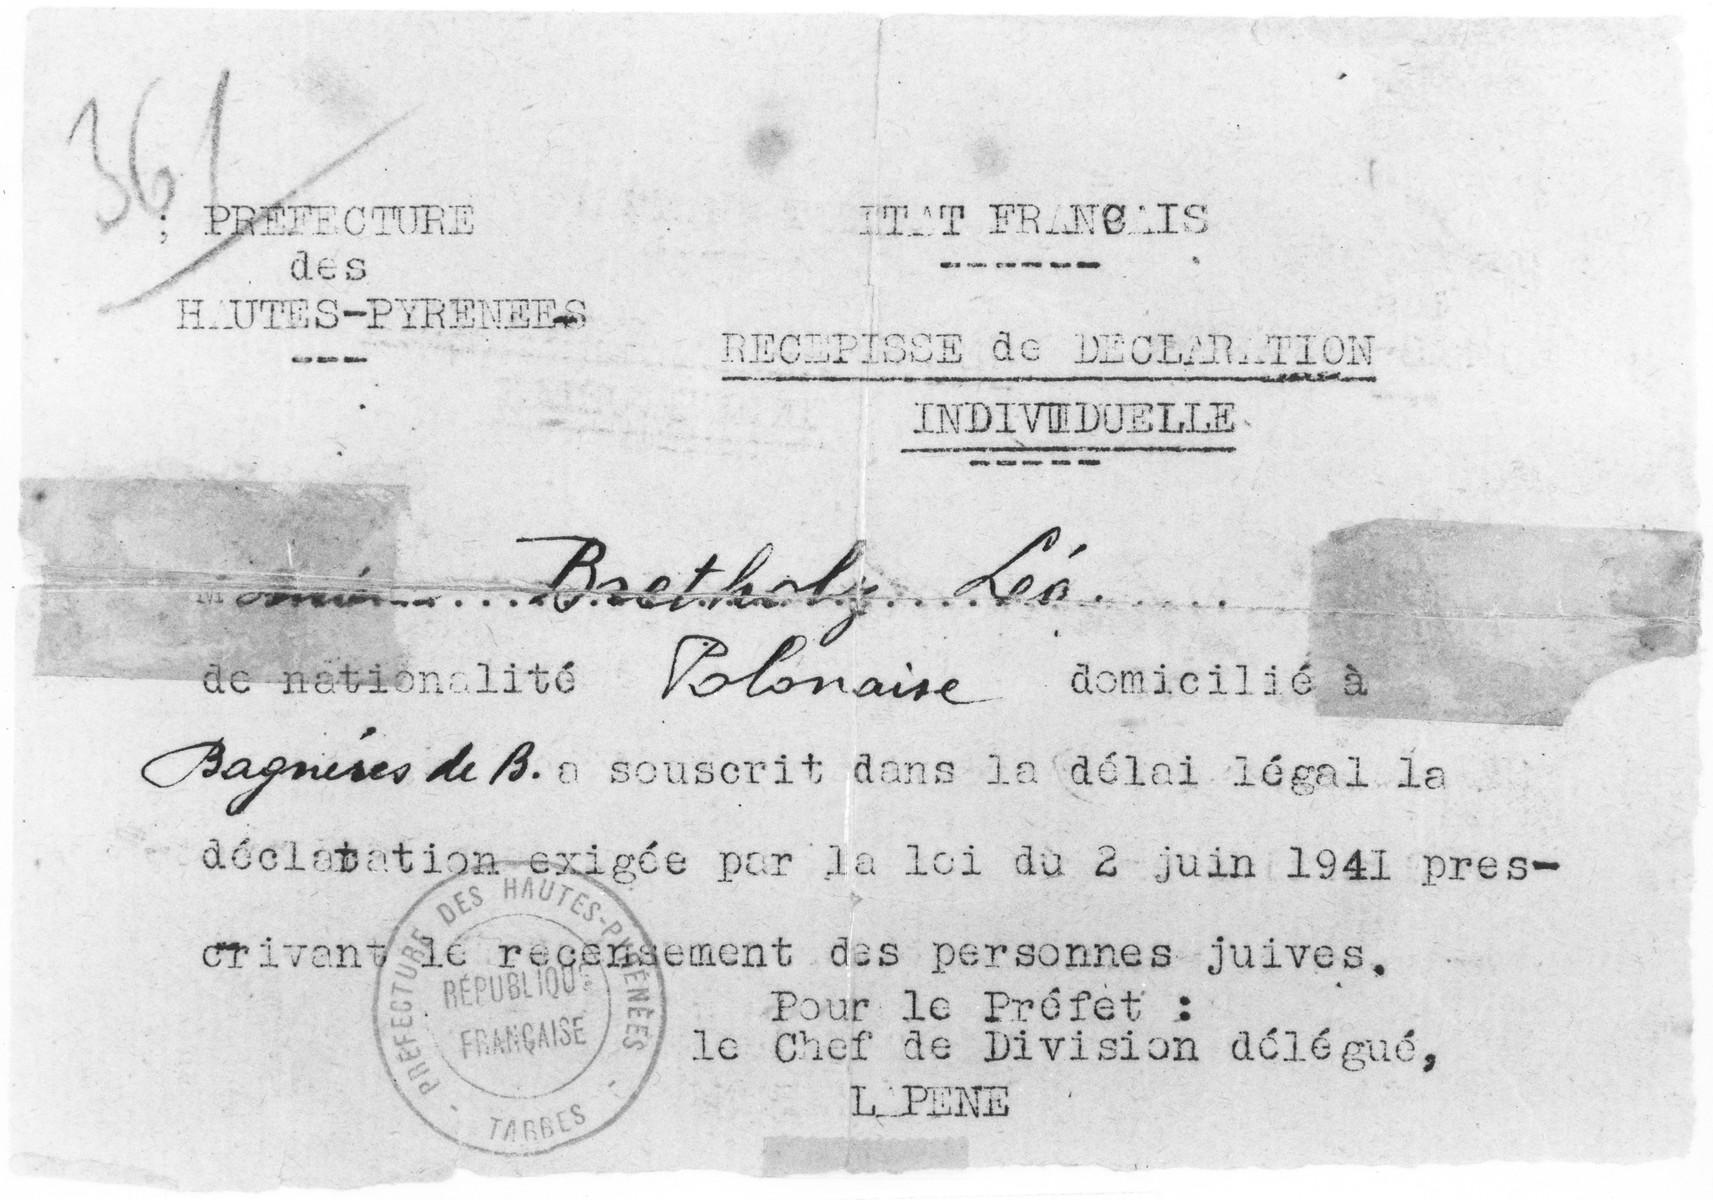 Affidavit signed by the mayor of Limoges attesting to the good conduct of Leo Bretholz.